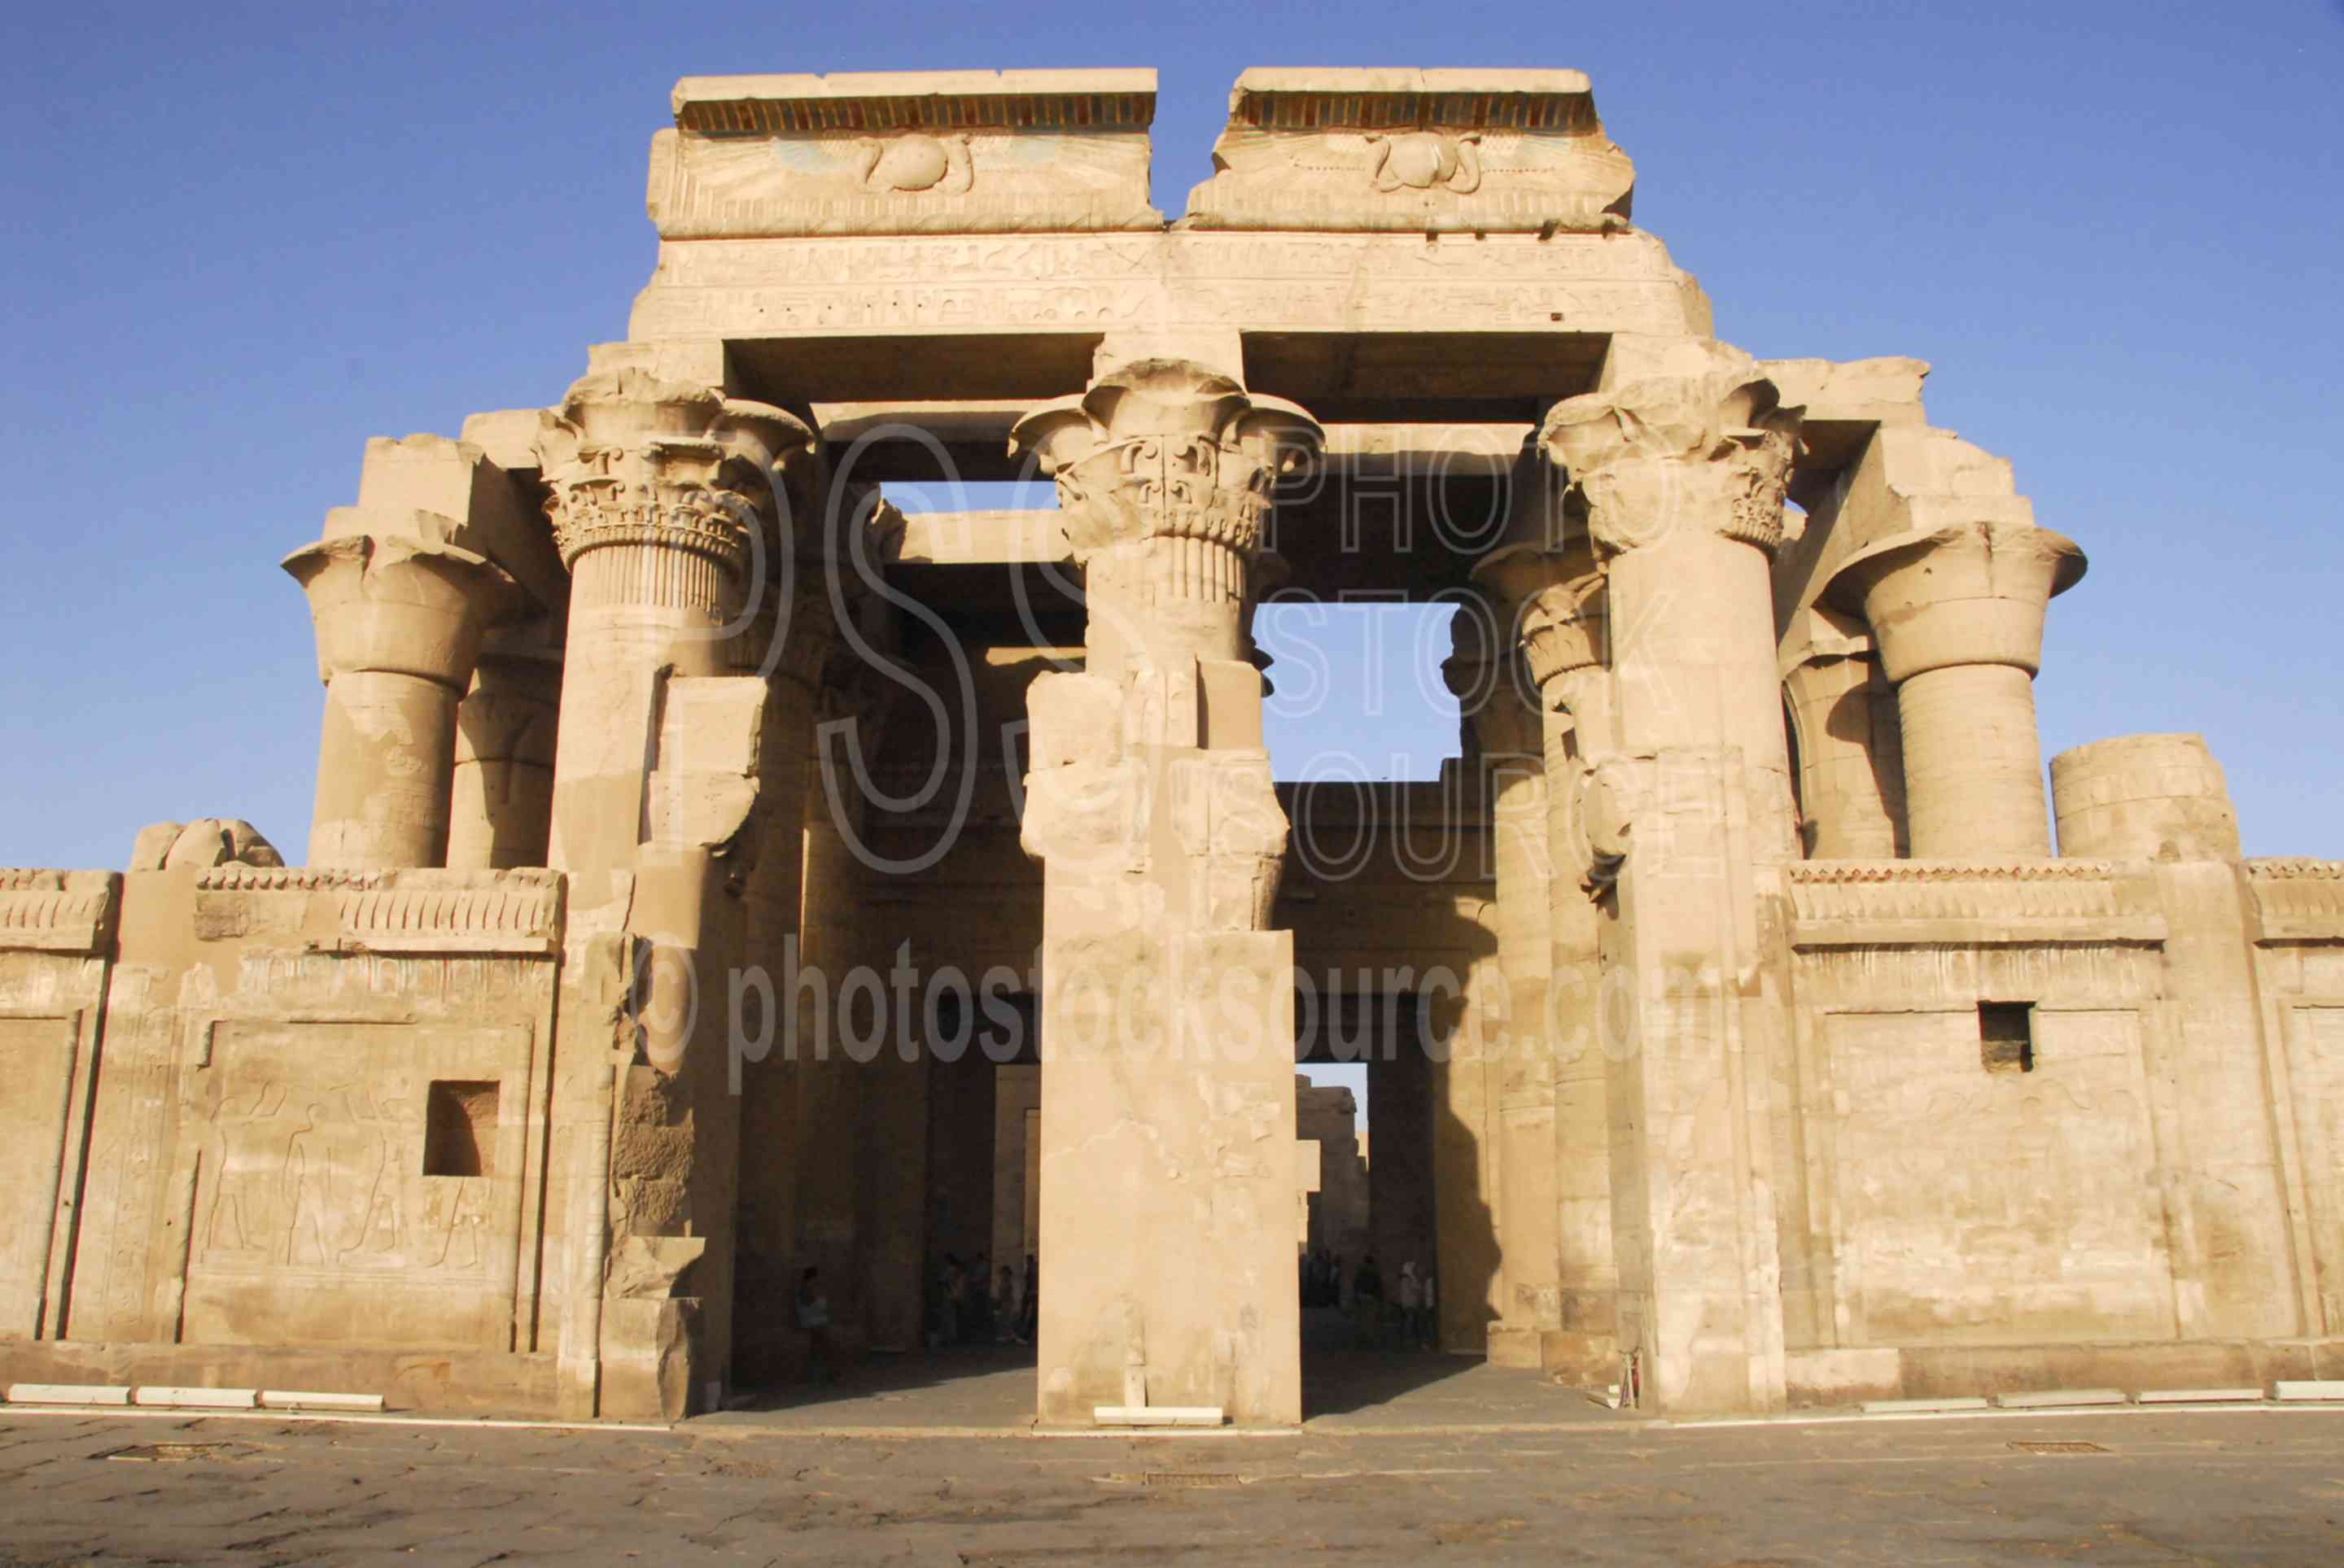 Kom Ombo Temple Entrance,ptolemy,horus,haroeris,sobek,horus the elder,architecture